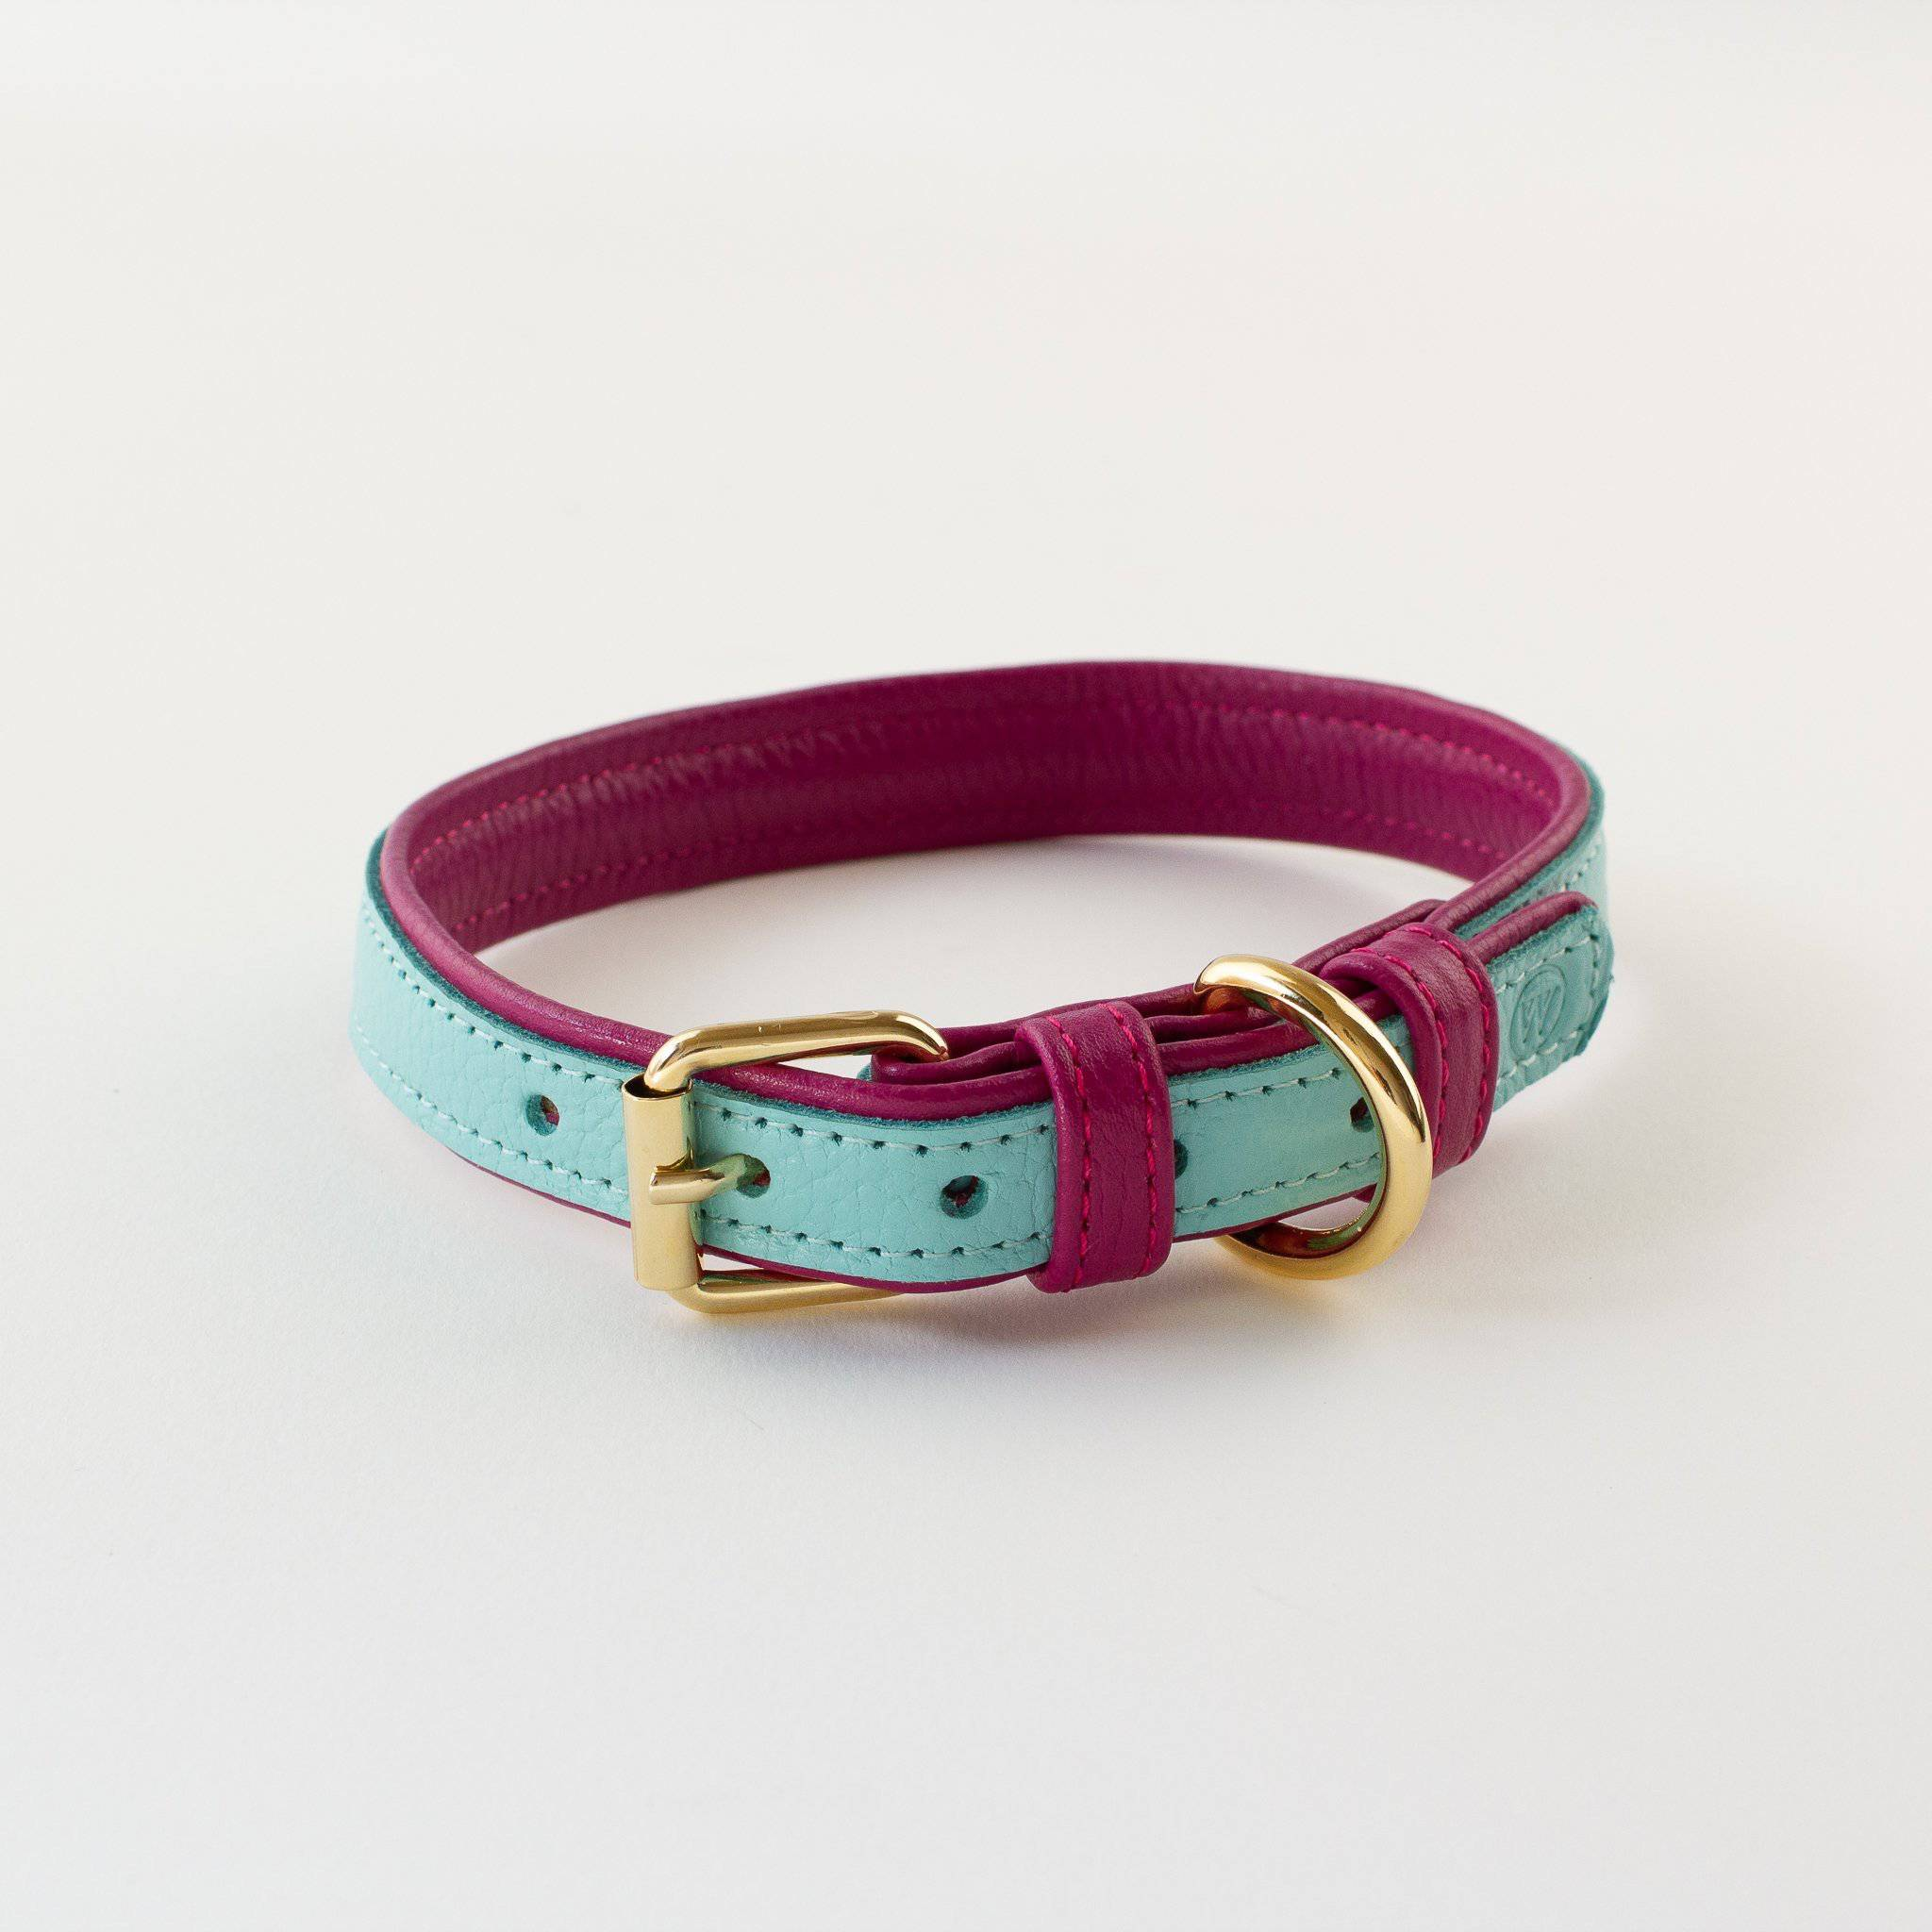 Teal & Fuchsia - Leather Collar - [Holler Brighton]